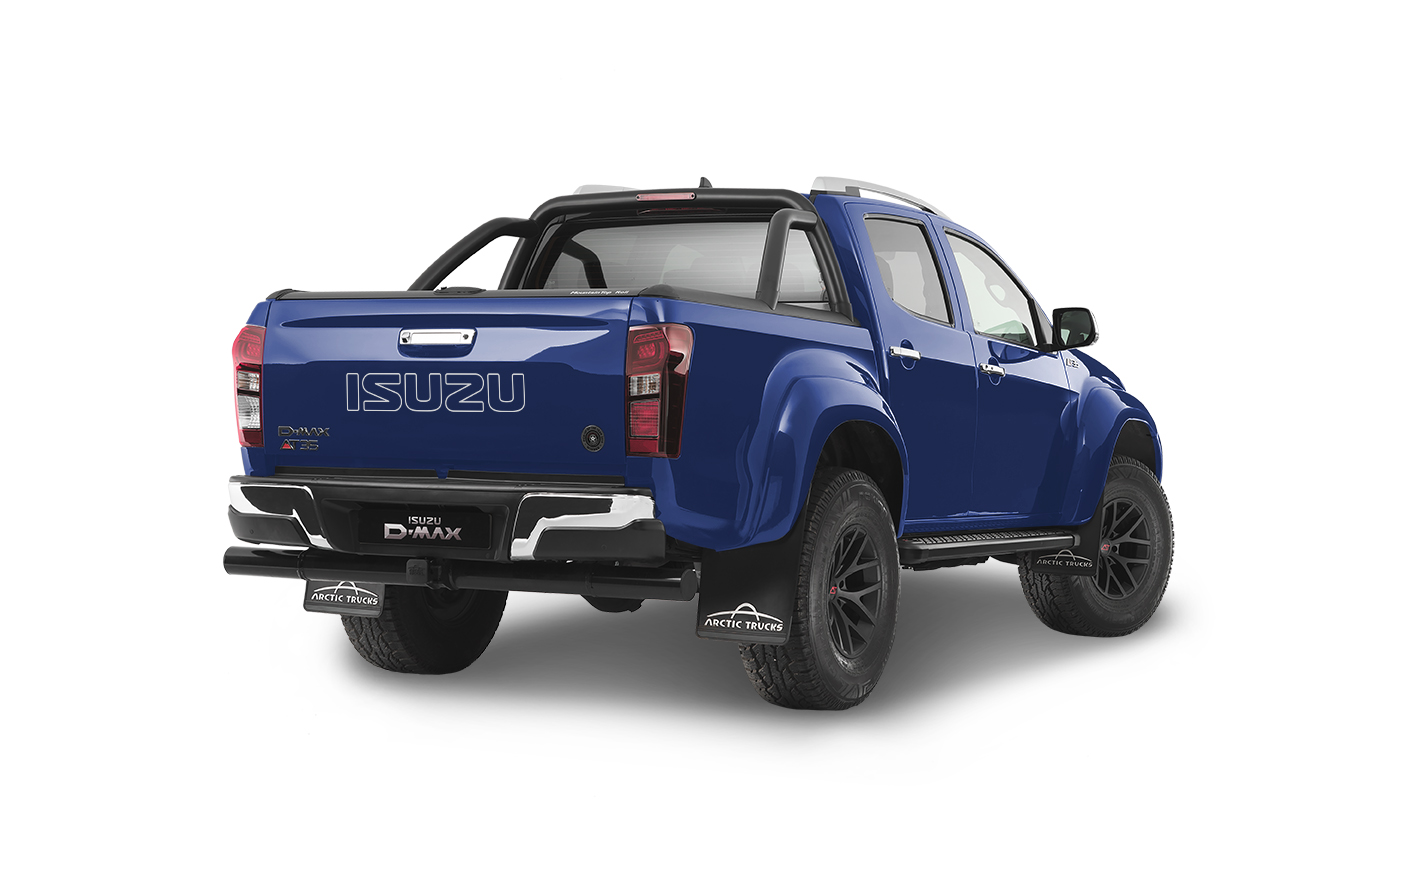 Rear view of the Isuzu D-Max Arctic AT35 in blue